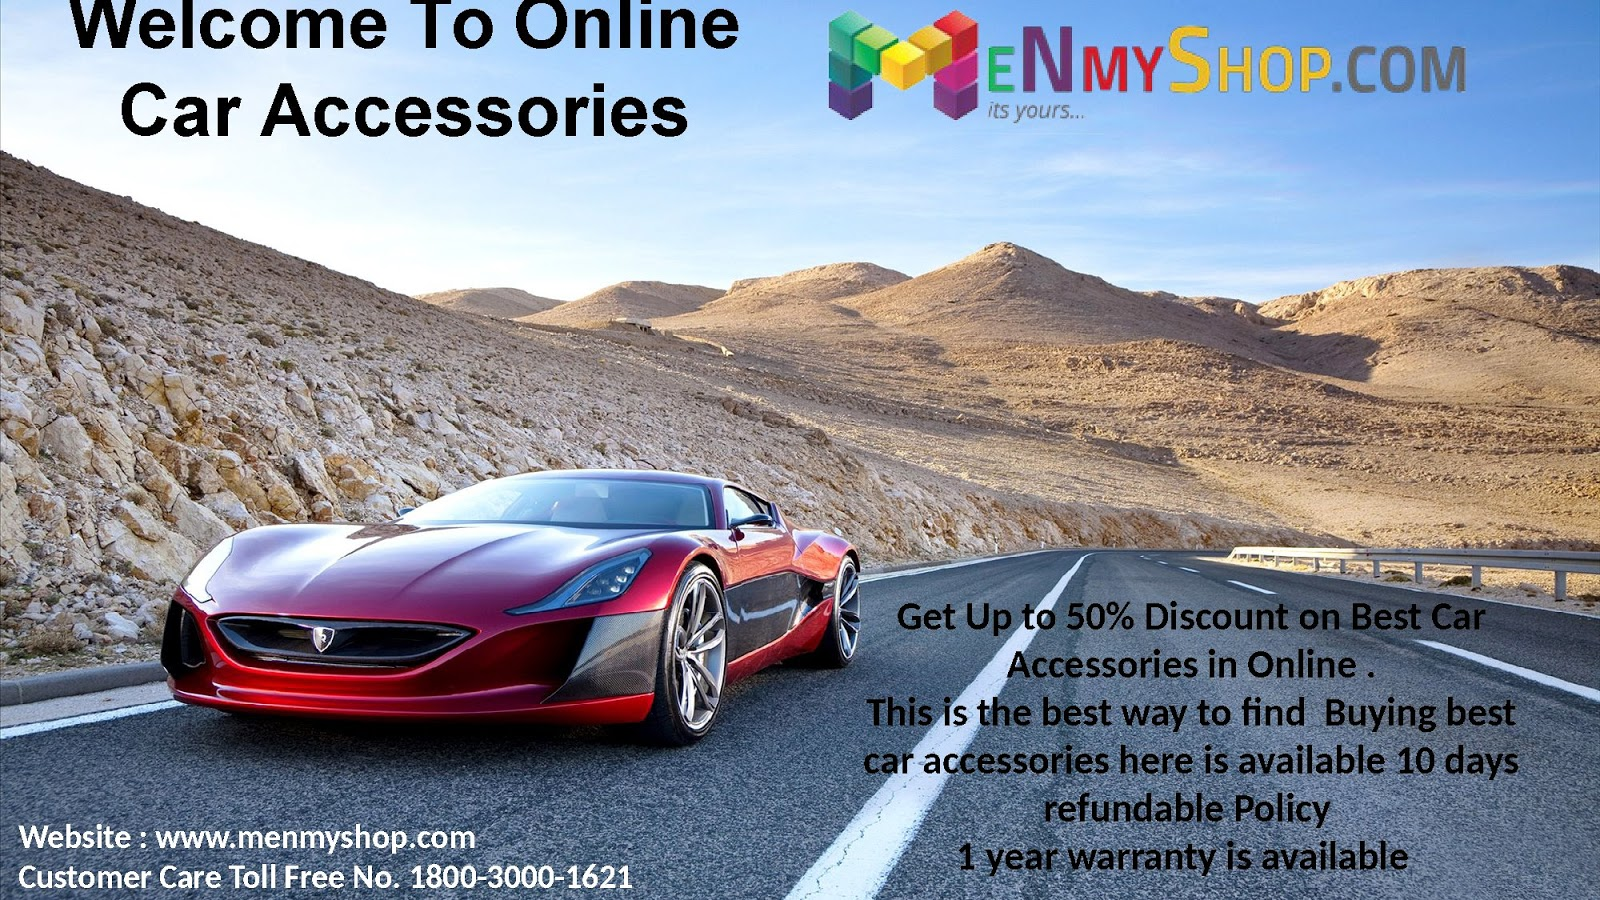 Where To Buy Best Car Accessories shop in Online